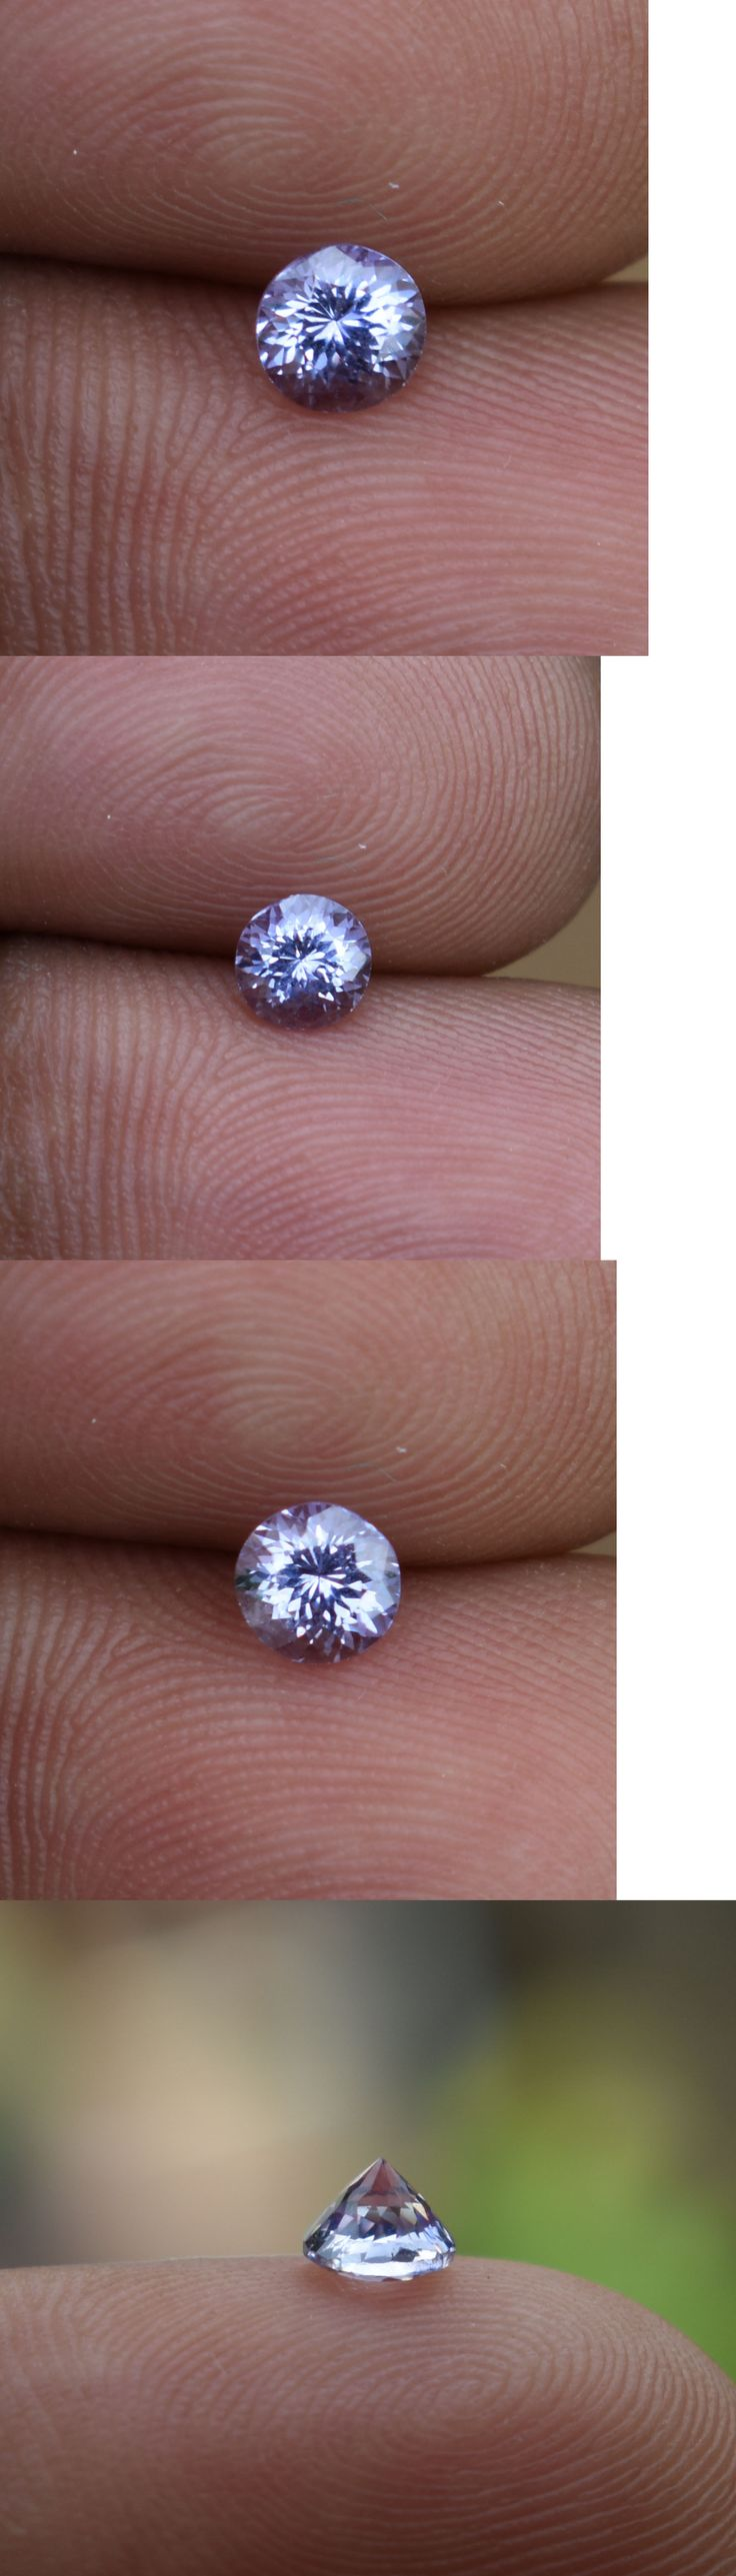 Natural Sapphires 4644: 0.43Ct Loose Natural Unheated Purple Sapphire Sri Lanka Round Portuguese Cut Vvs -> BUY IT NOW ONLY: $35 on eBay!